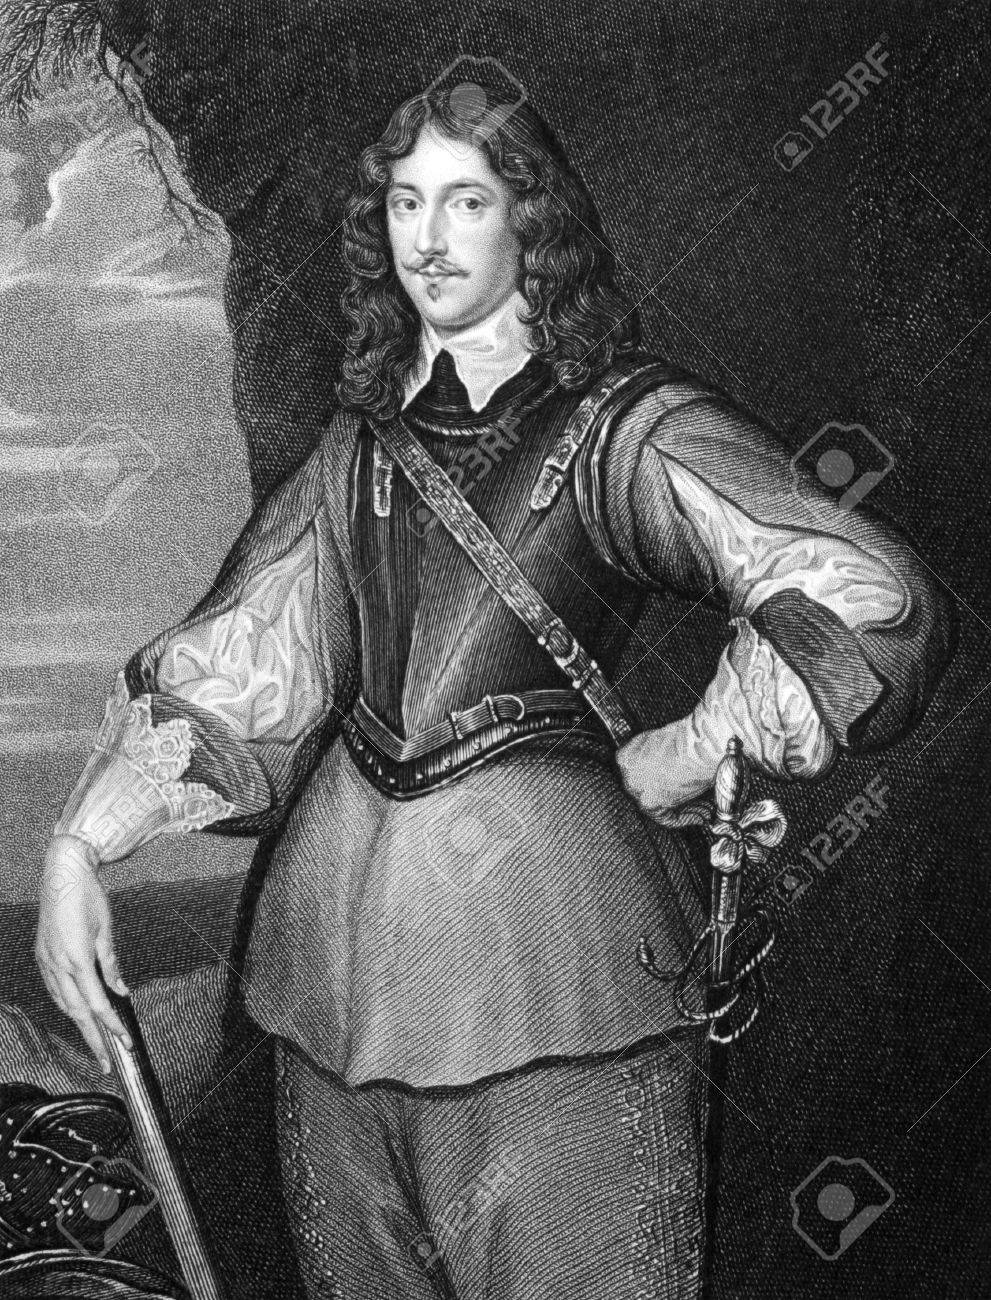 Montagu Bertie, 2nd Earl of Lindsey (1608-1666) on engraving from 1827